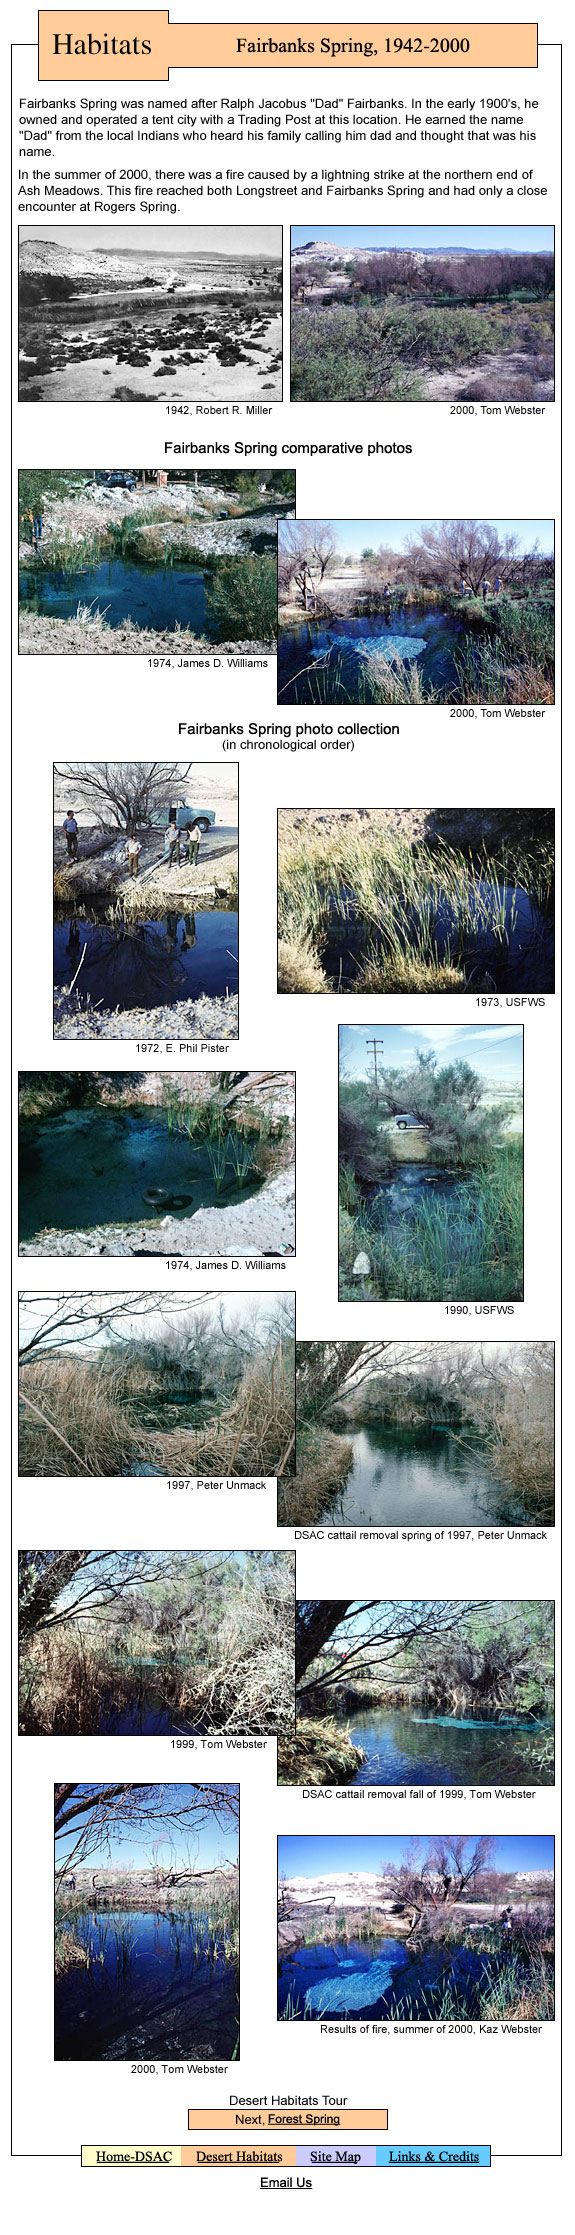 ... and information. A desert fish habitat located in the Amargosa Valley Fish